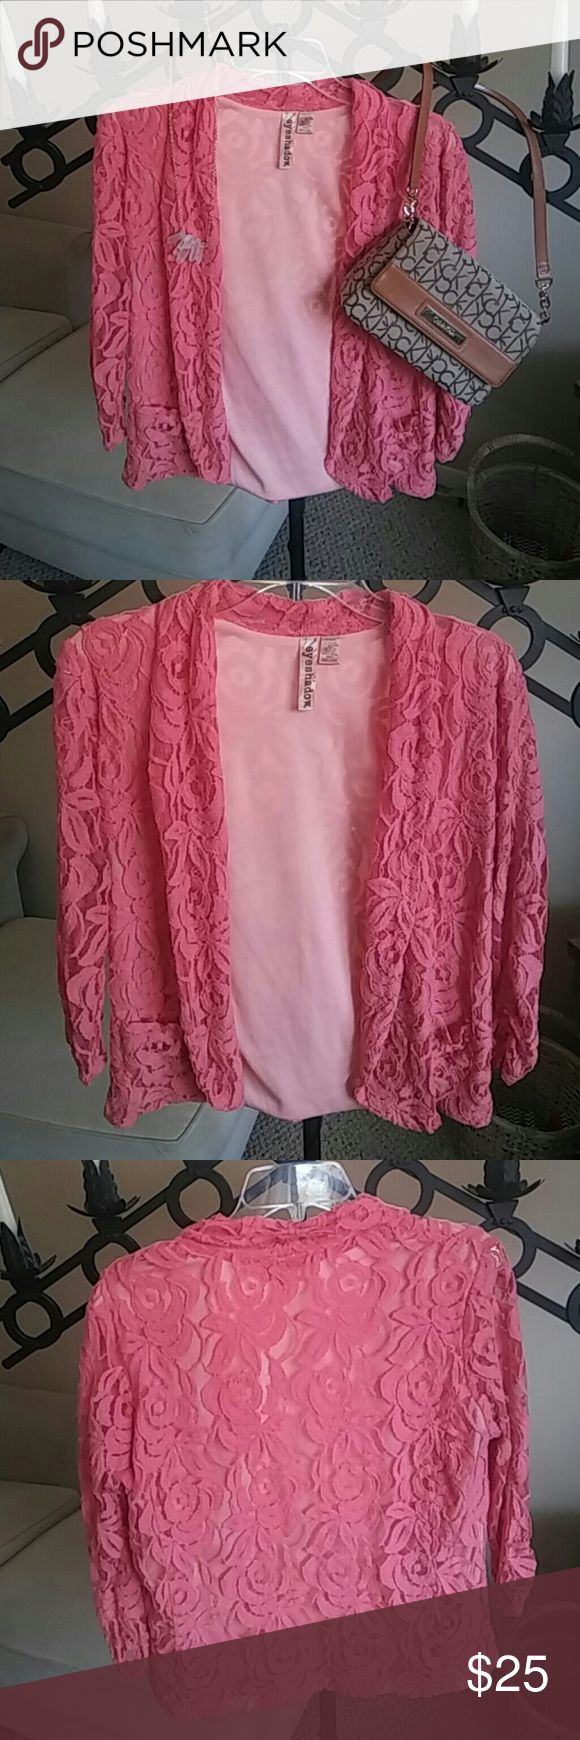 HALLOWEEN SALE! Coral Lace Cardigan A beautiful cardigan in a coraly pink color. Gently used. Some loose threads on the lace. I also have it available in black. Also look for the Calvin Klein purse for purchase in my closet! Bundle! Eyeshadow Sweaters Cardigans